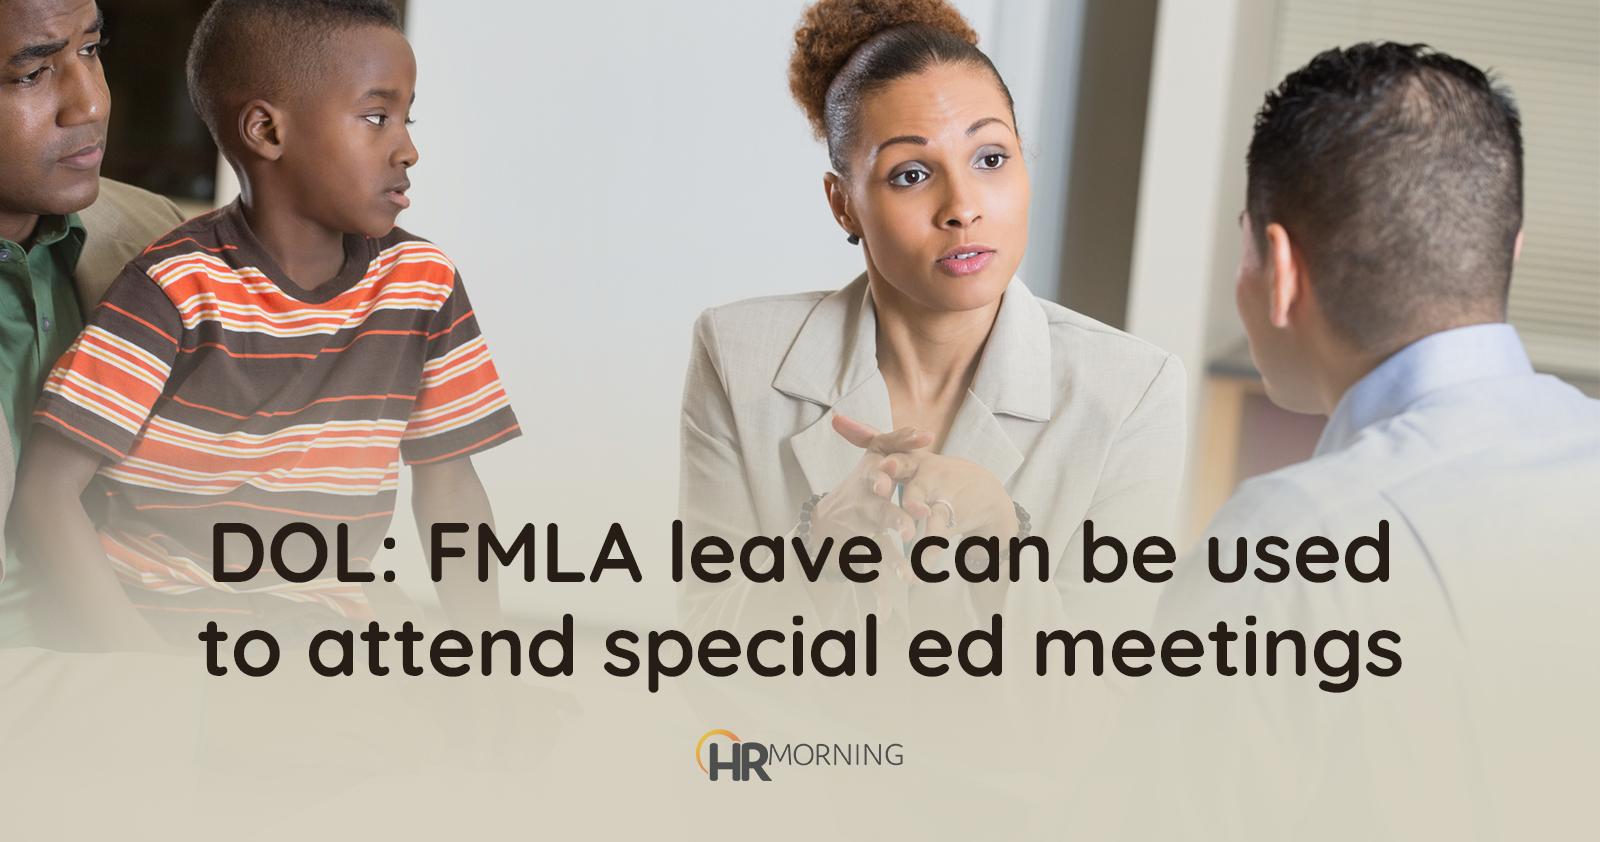 DOL: FMLA leave can be used to attend special ed meetings